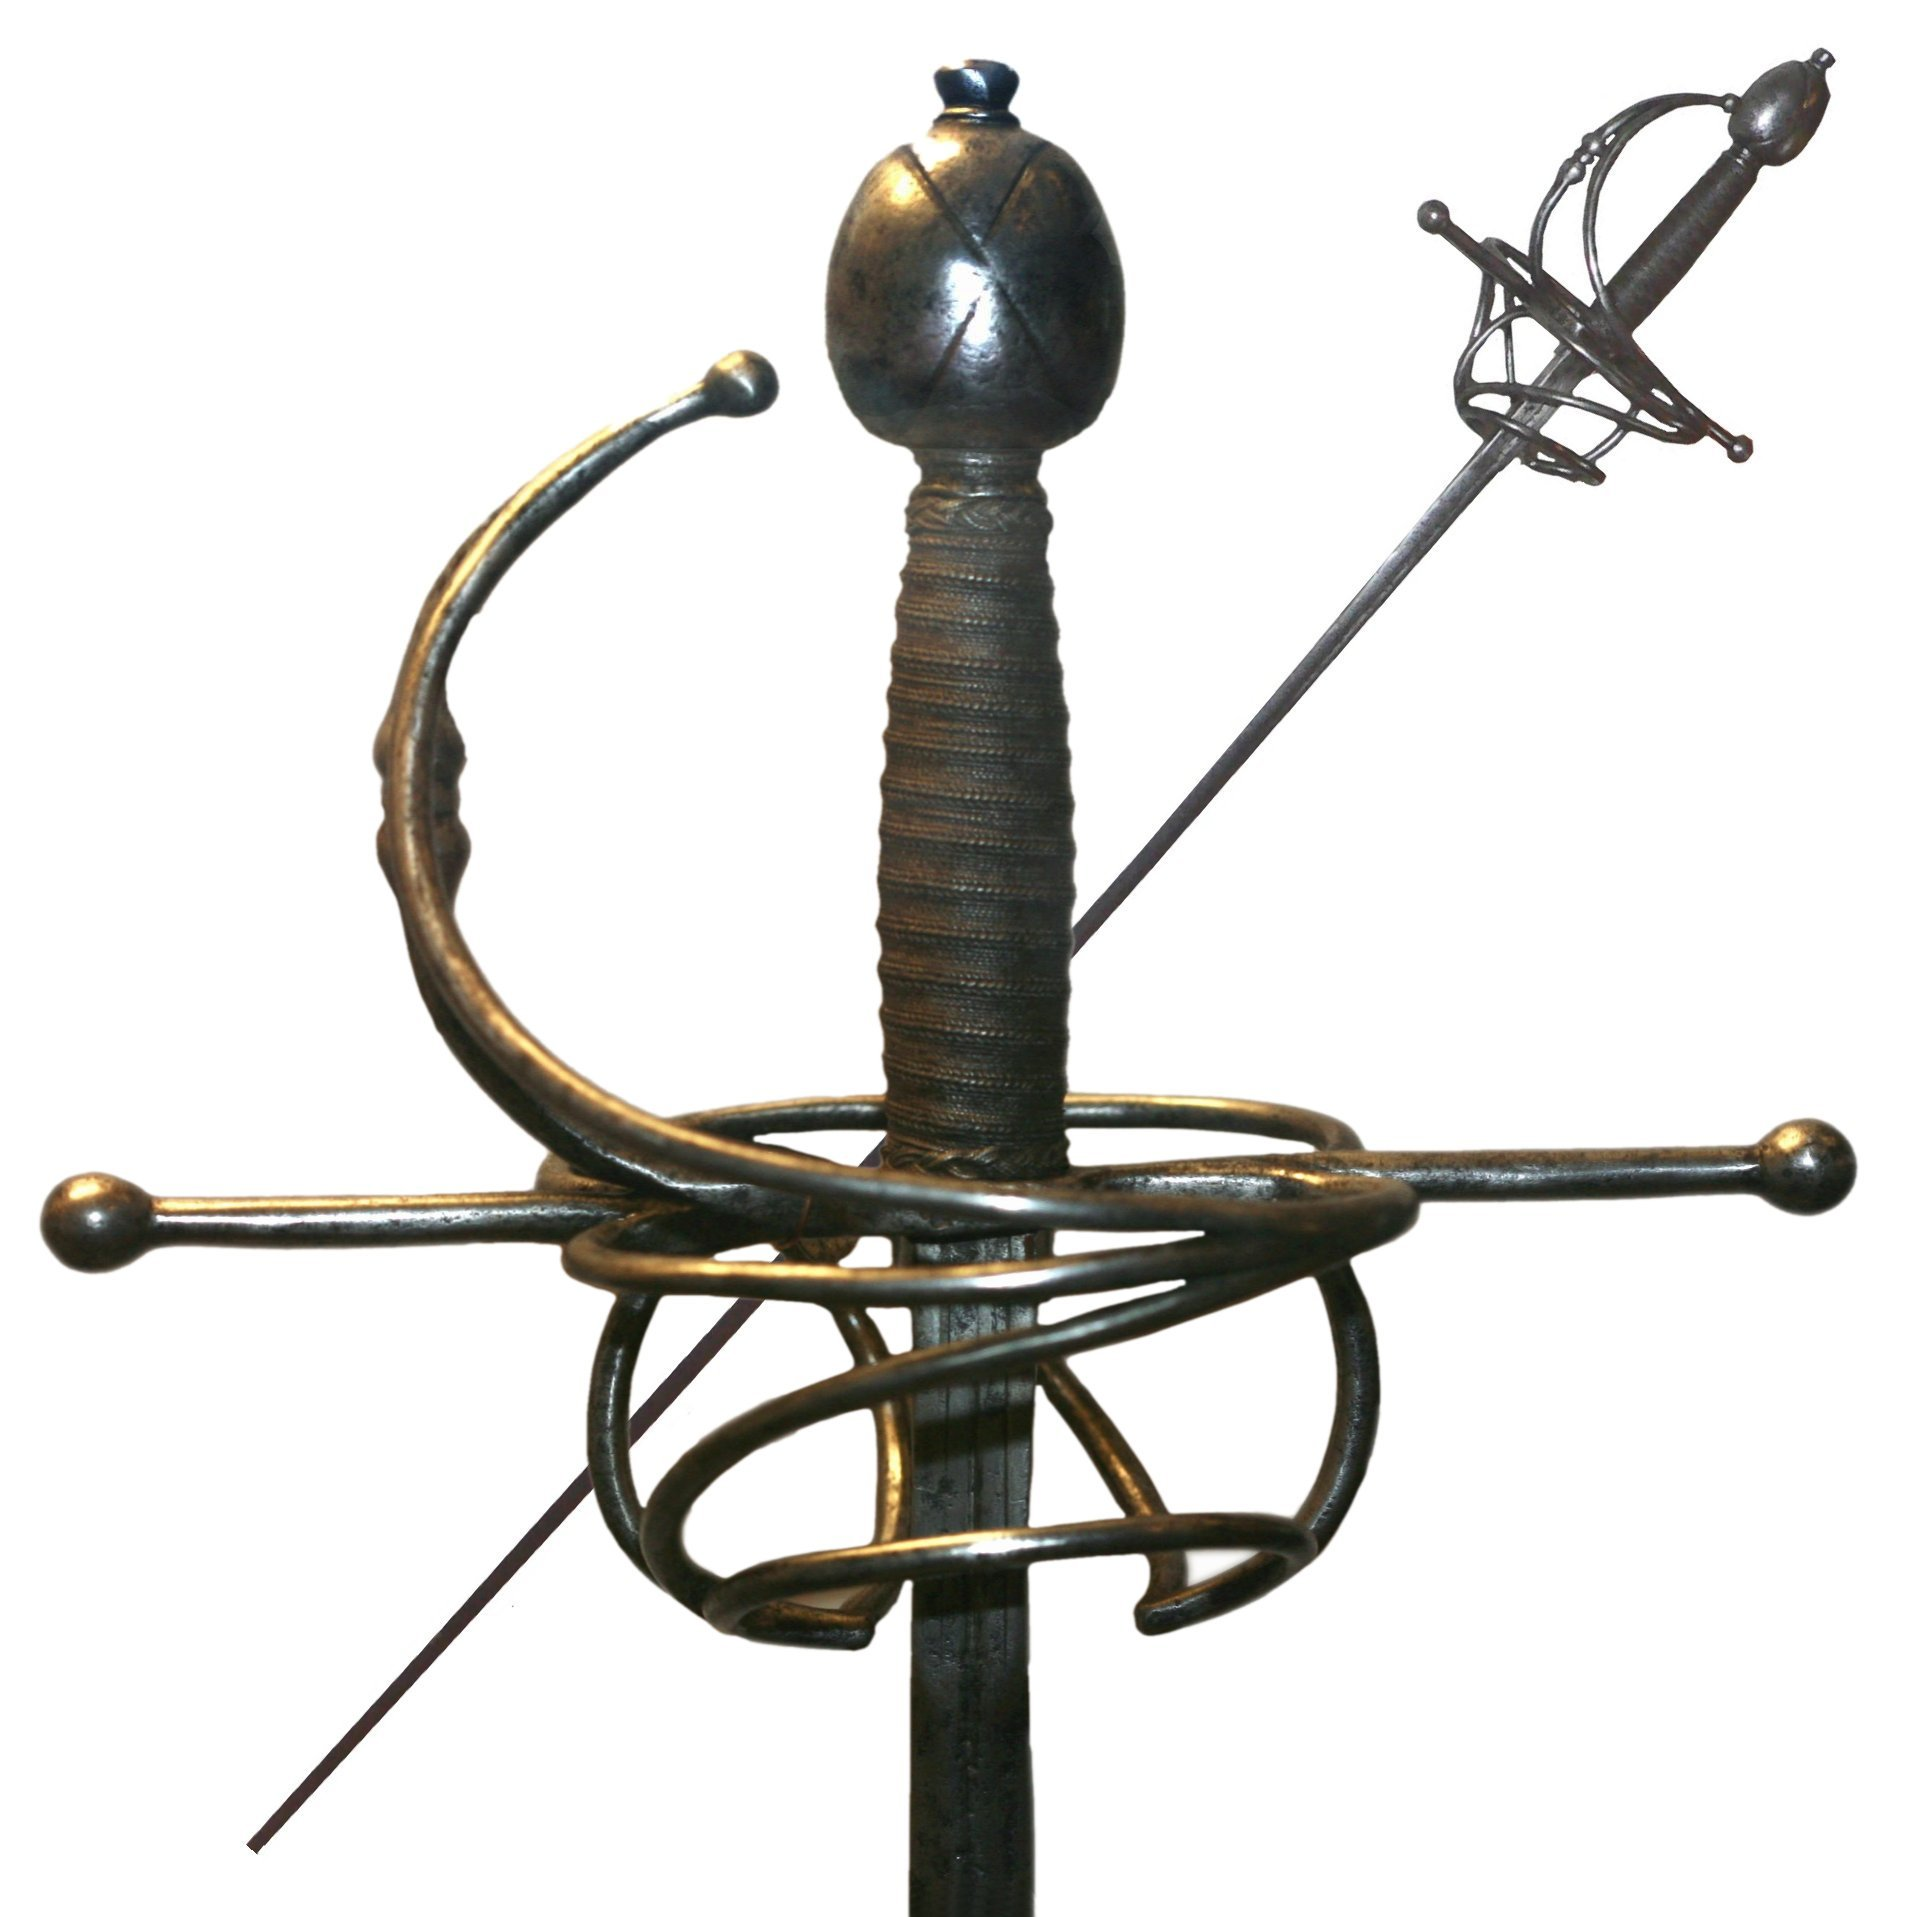 elizabethan age weapons